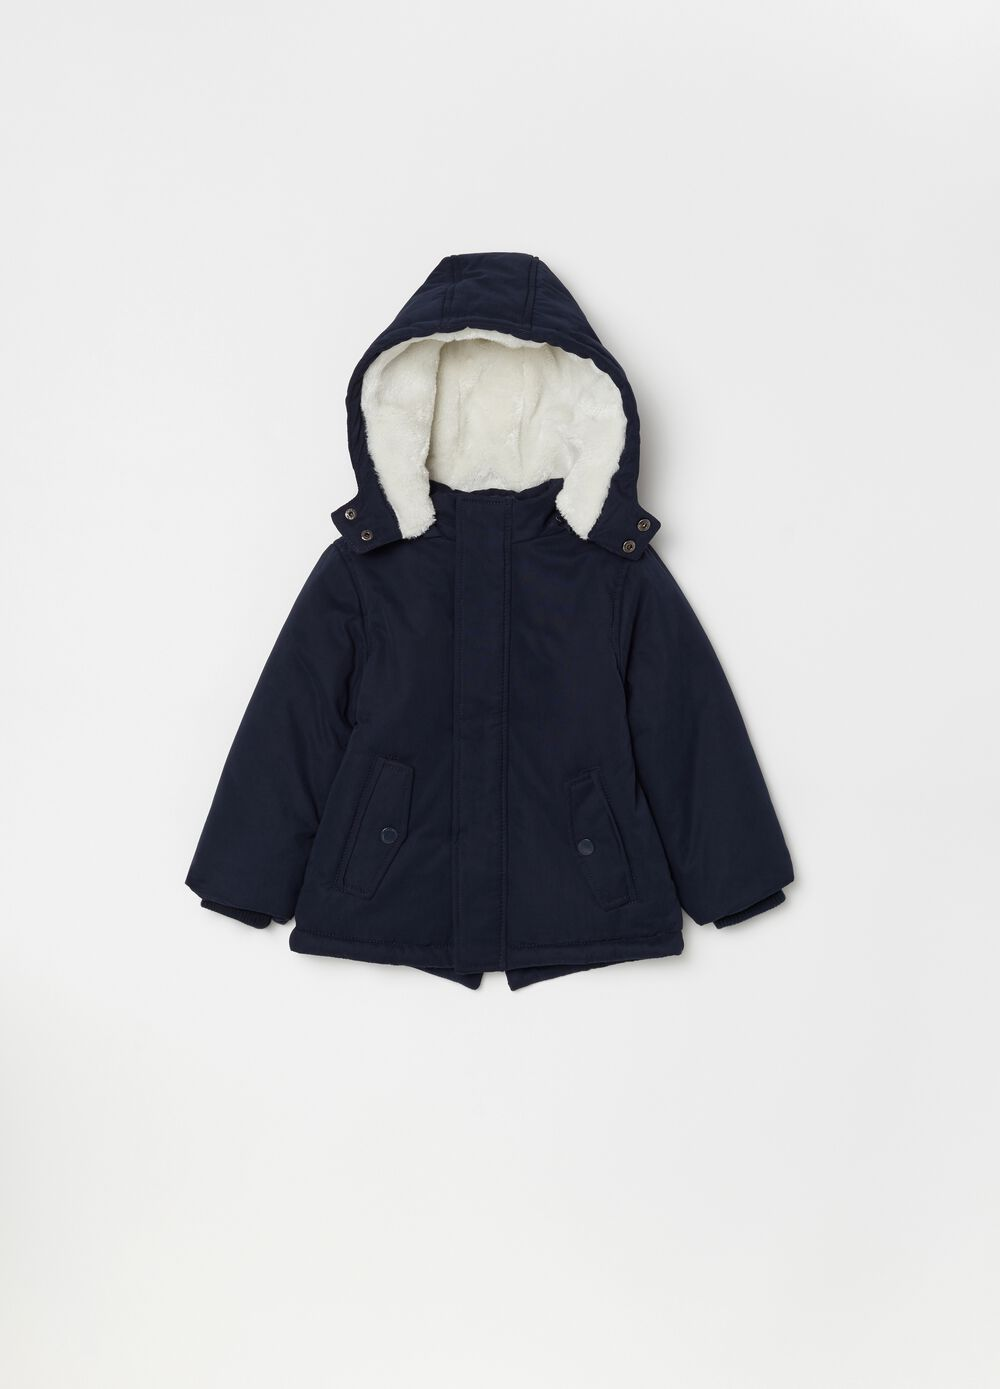 Padded jacket with hood and pockets